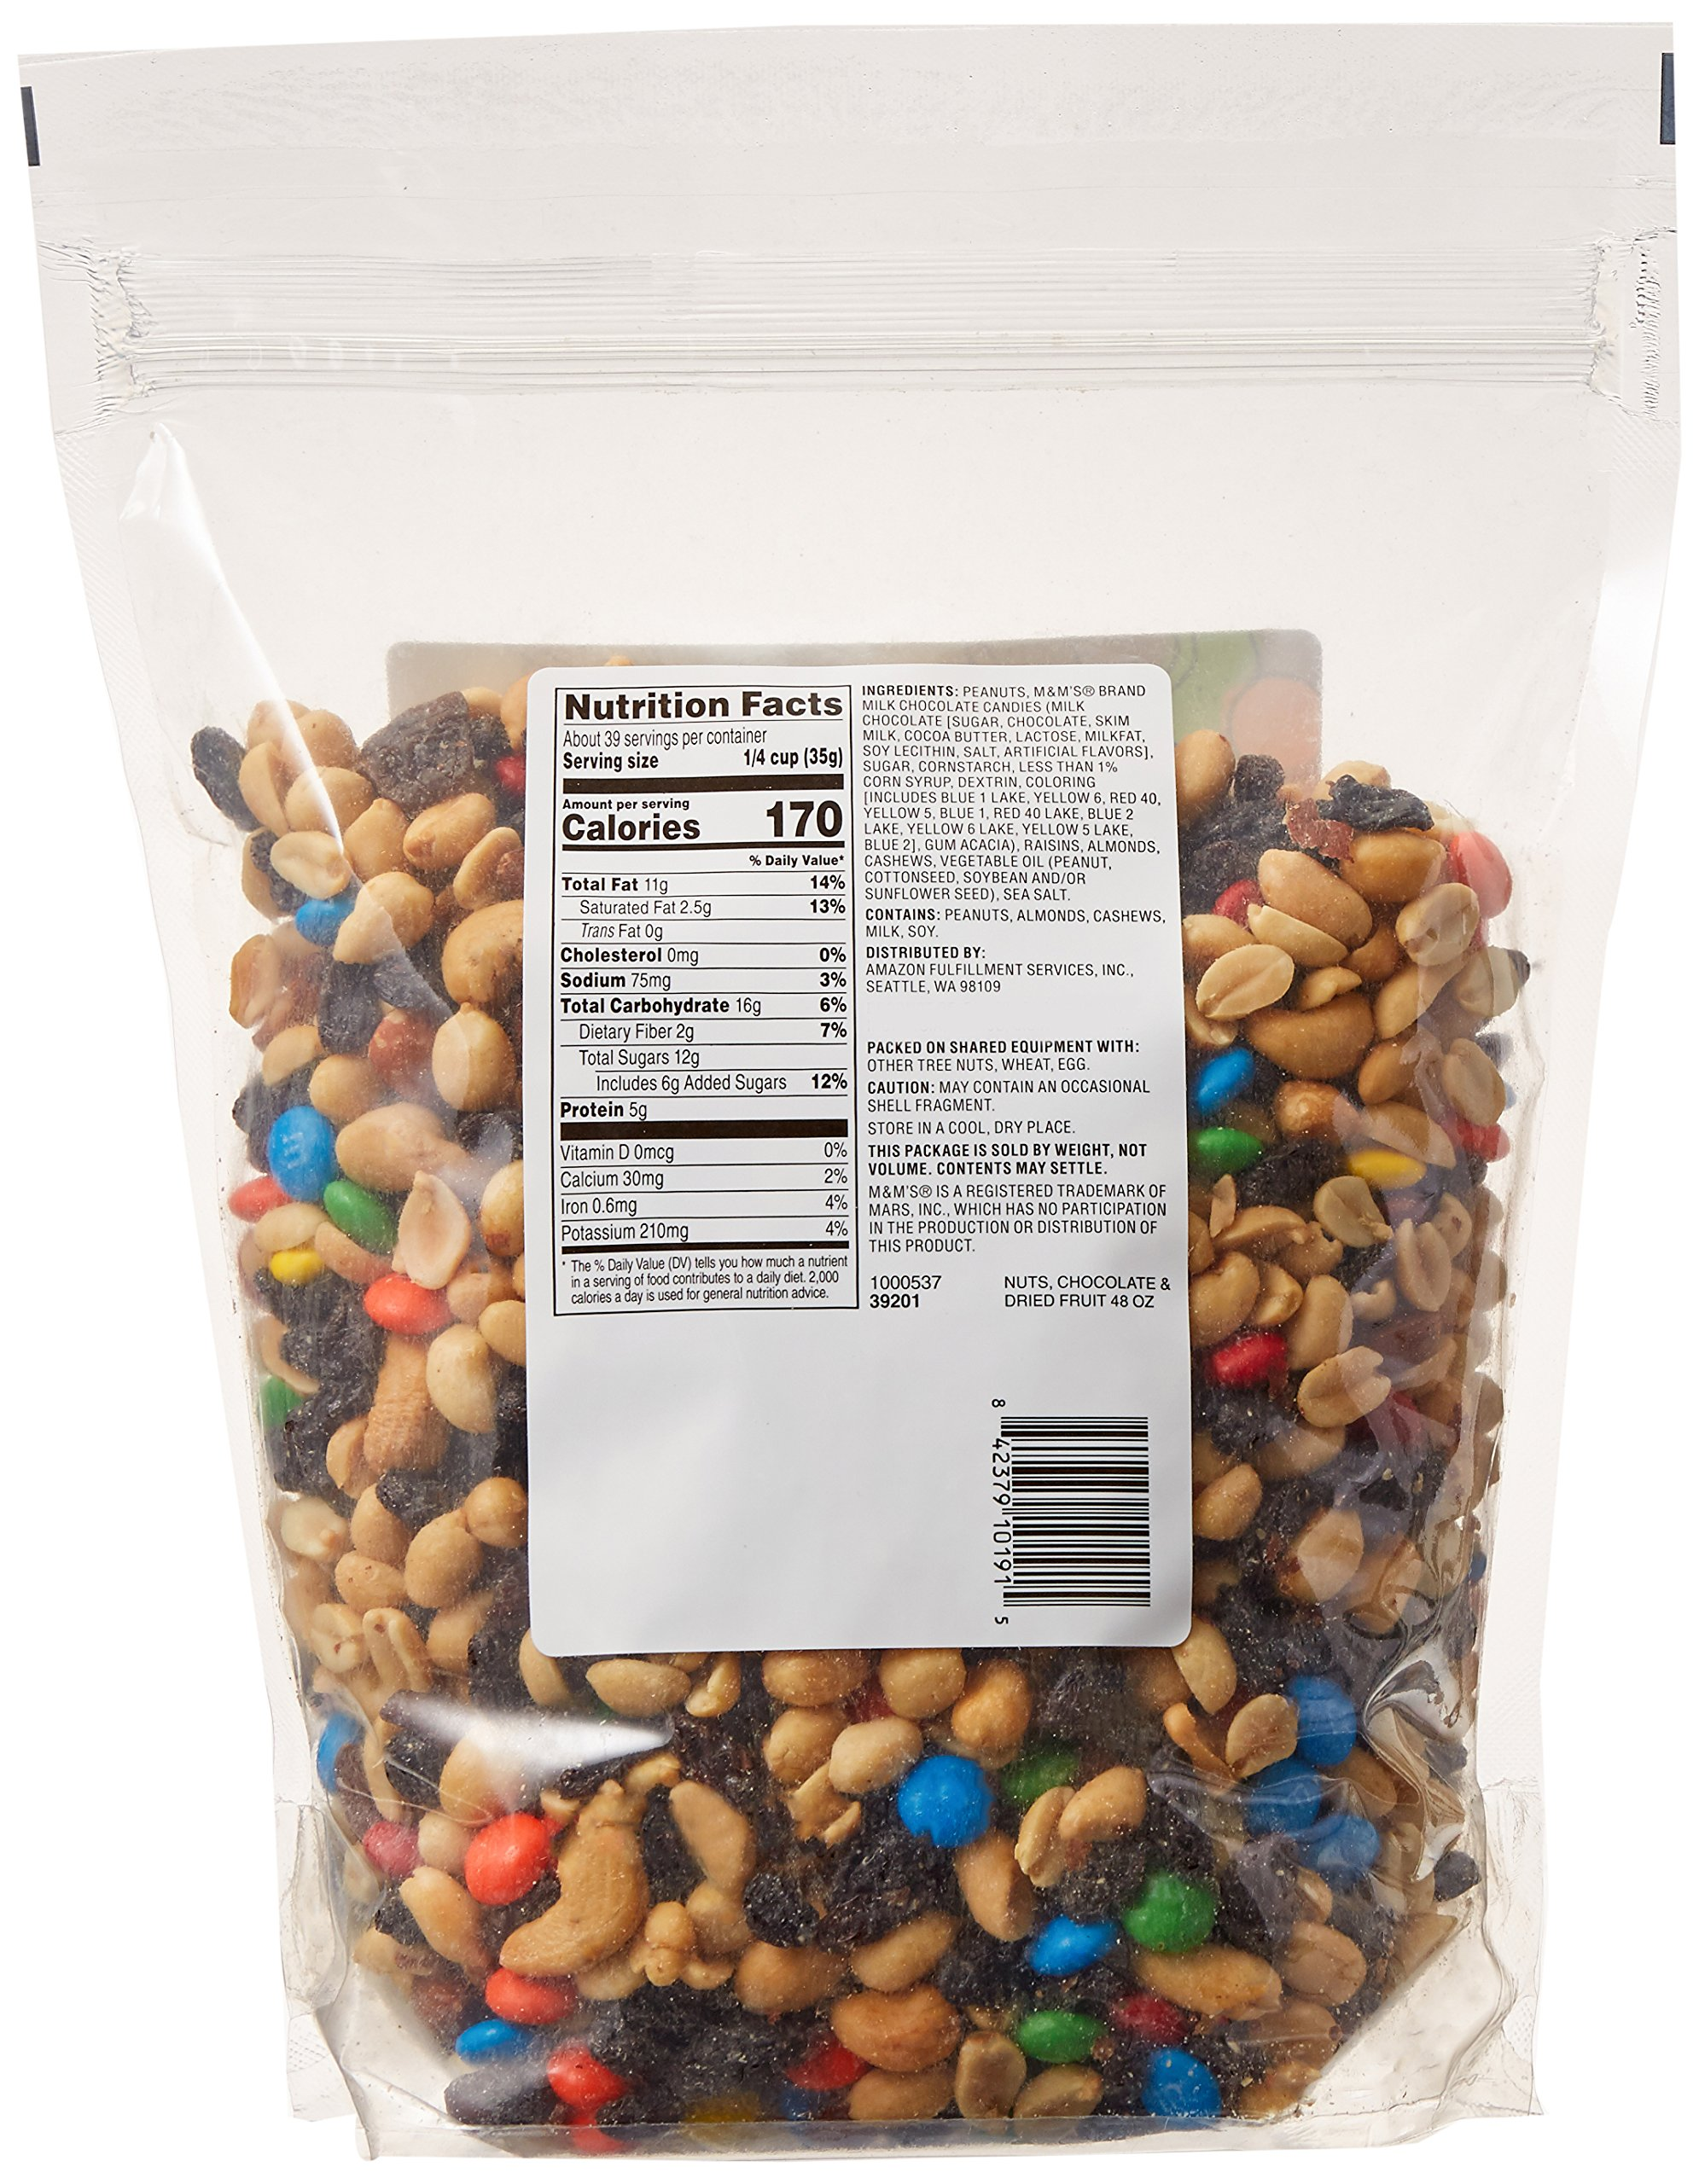 Amazon Brand - Happy Belly Amazon Brand Nuts, Chocolate & Dried Fruit Trail Mix, 48 ounce by Happy Belly (Image #5)